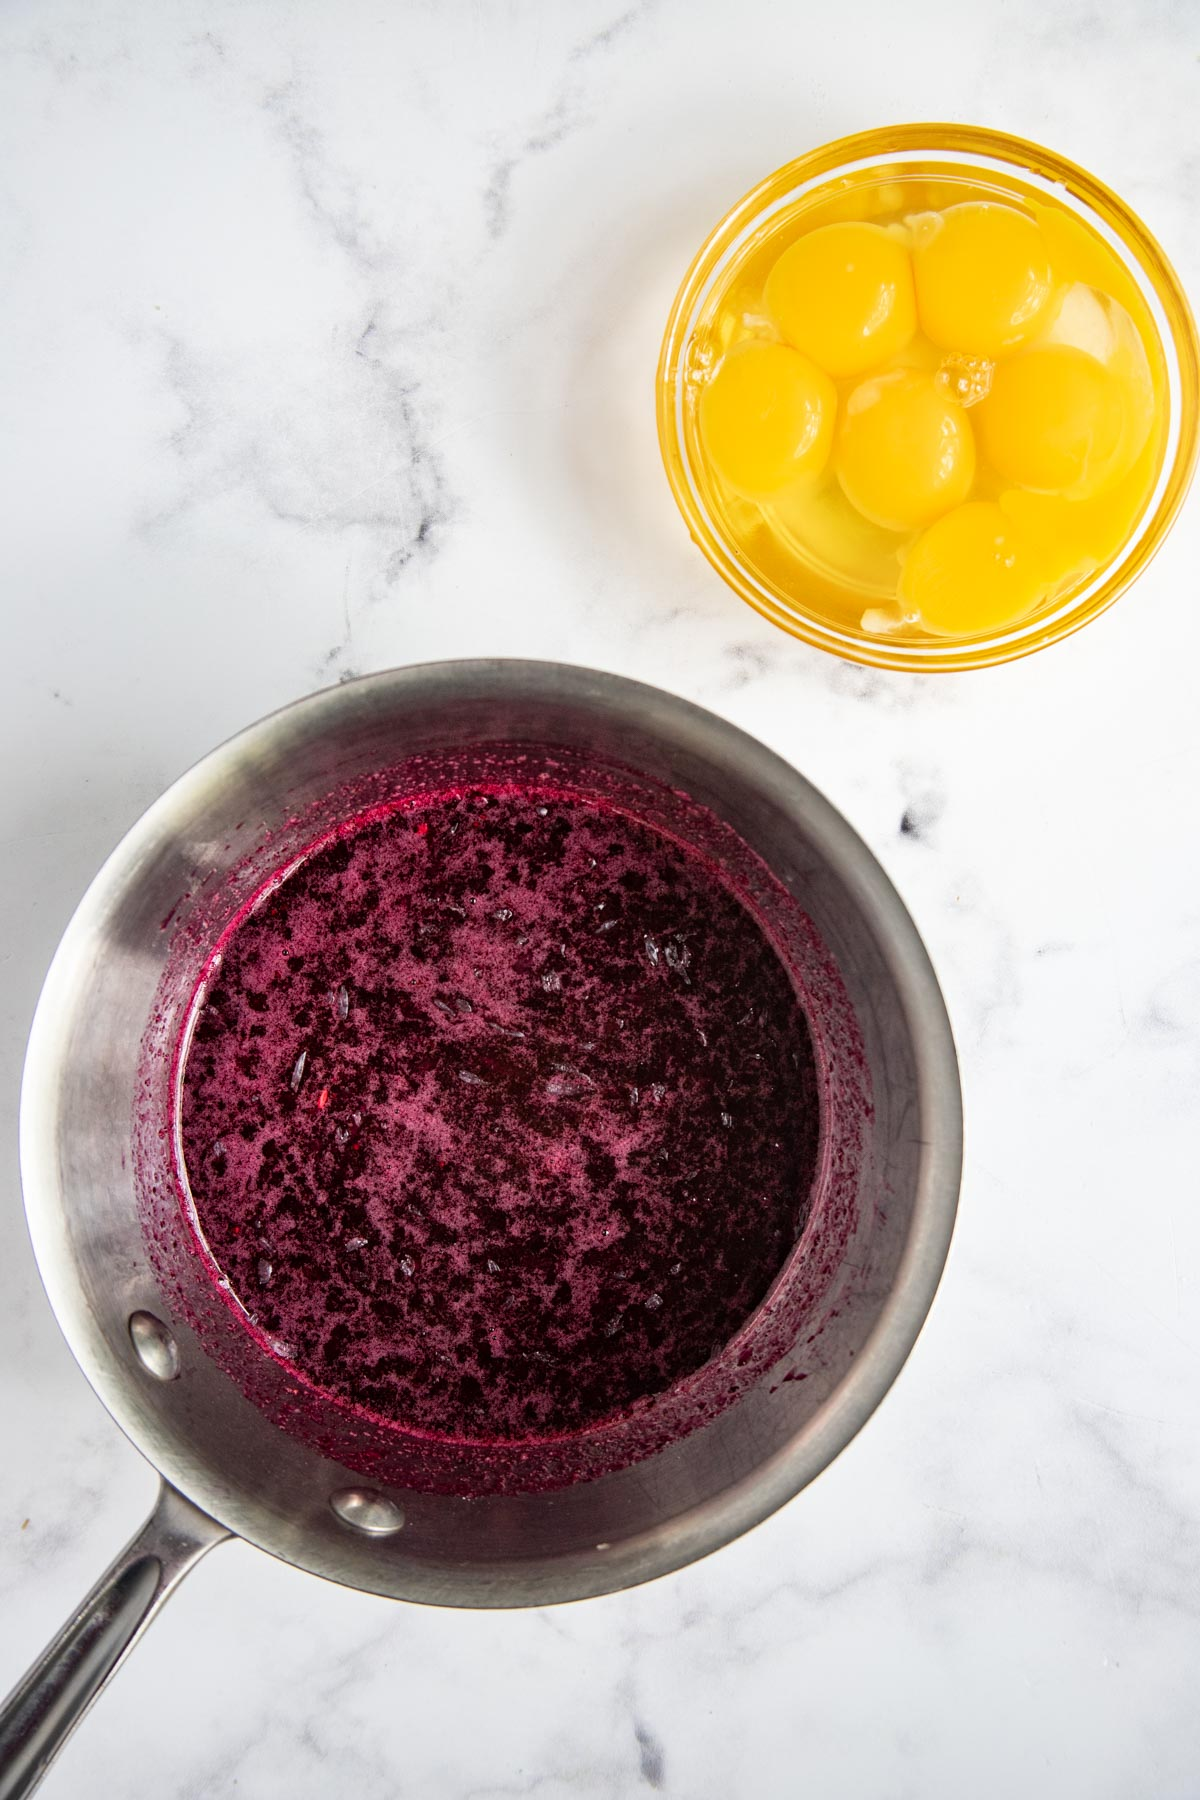 Blueberry puree in a saucepan next to a bowl of eggs